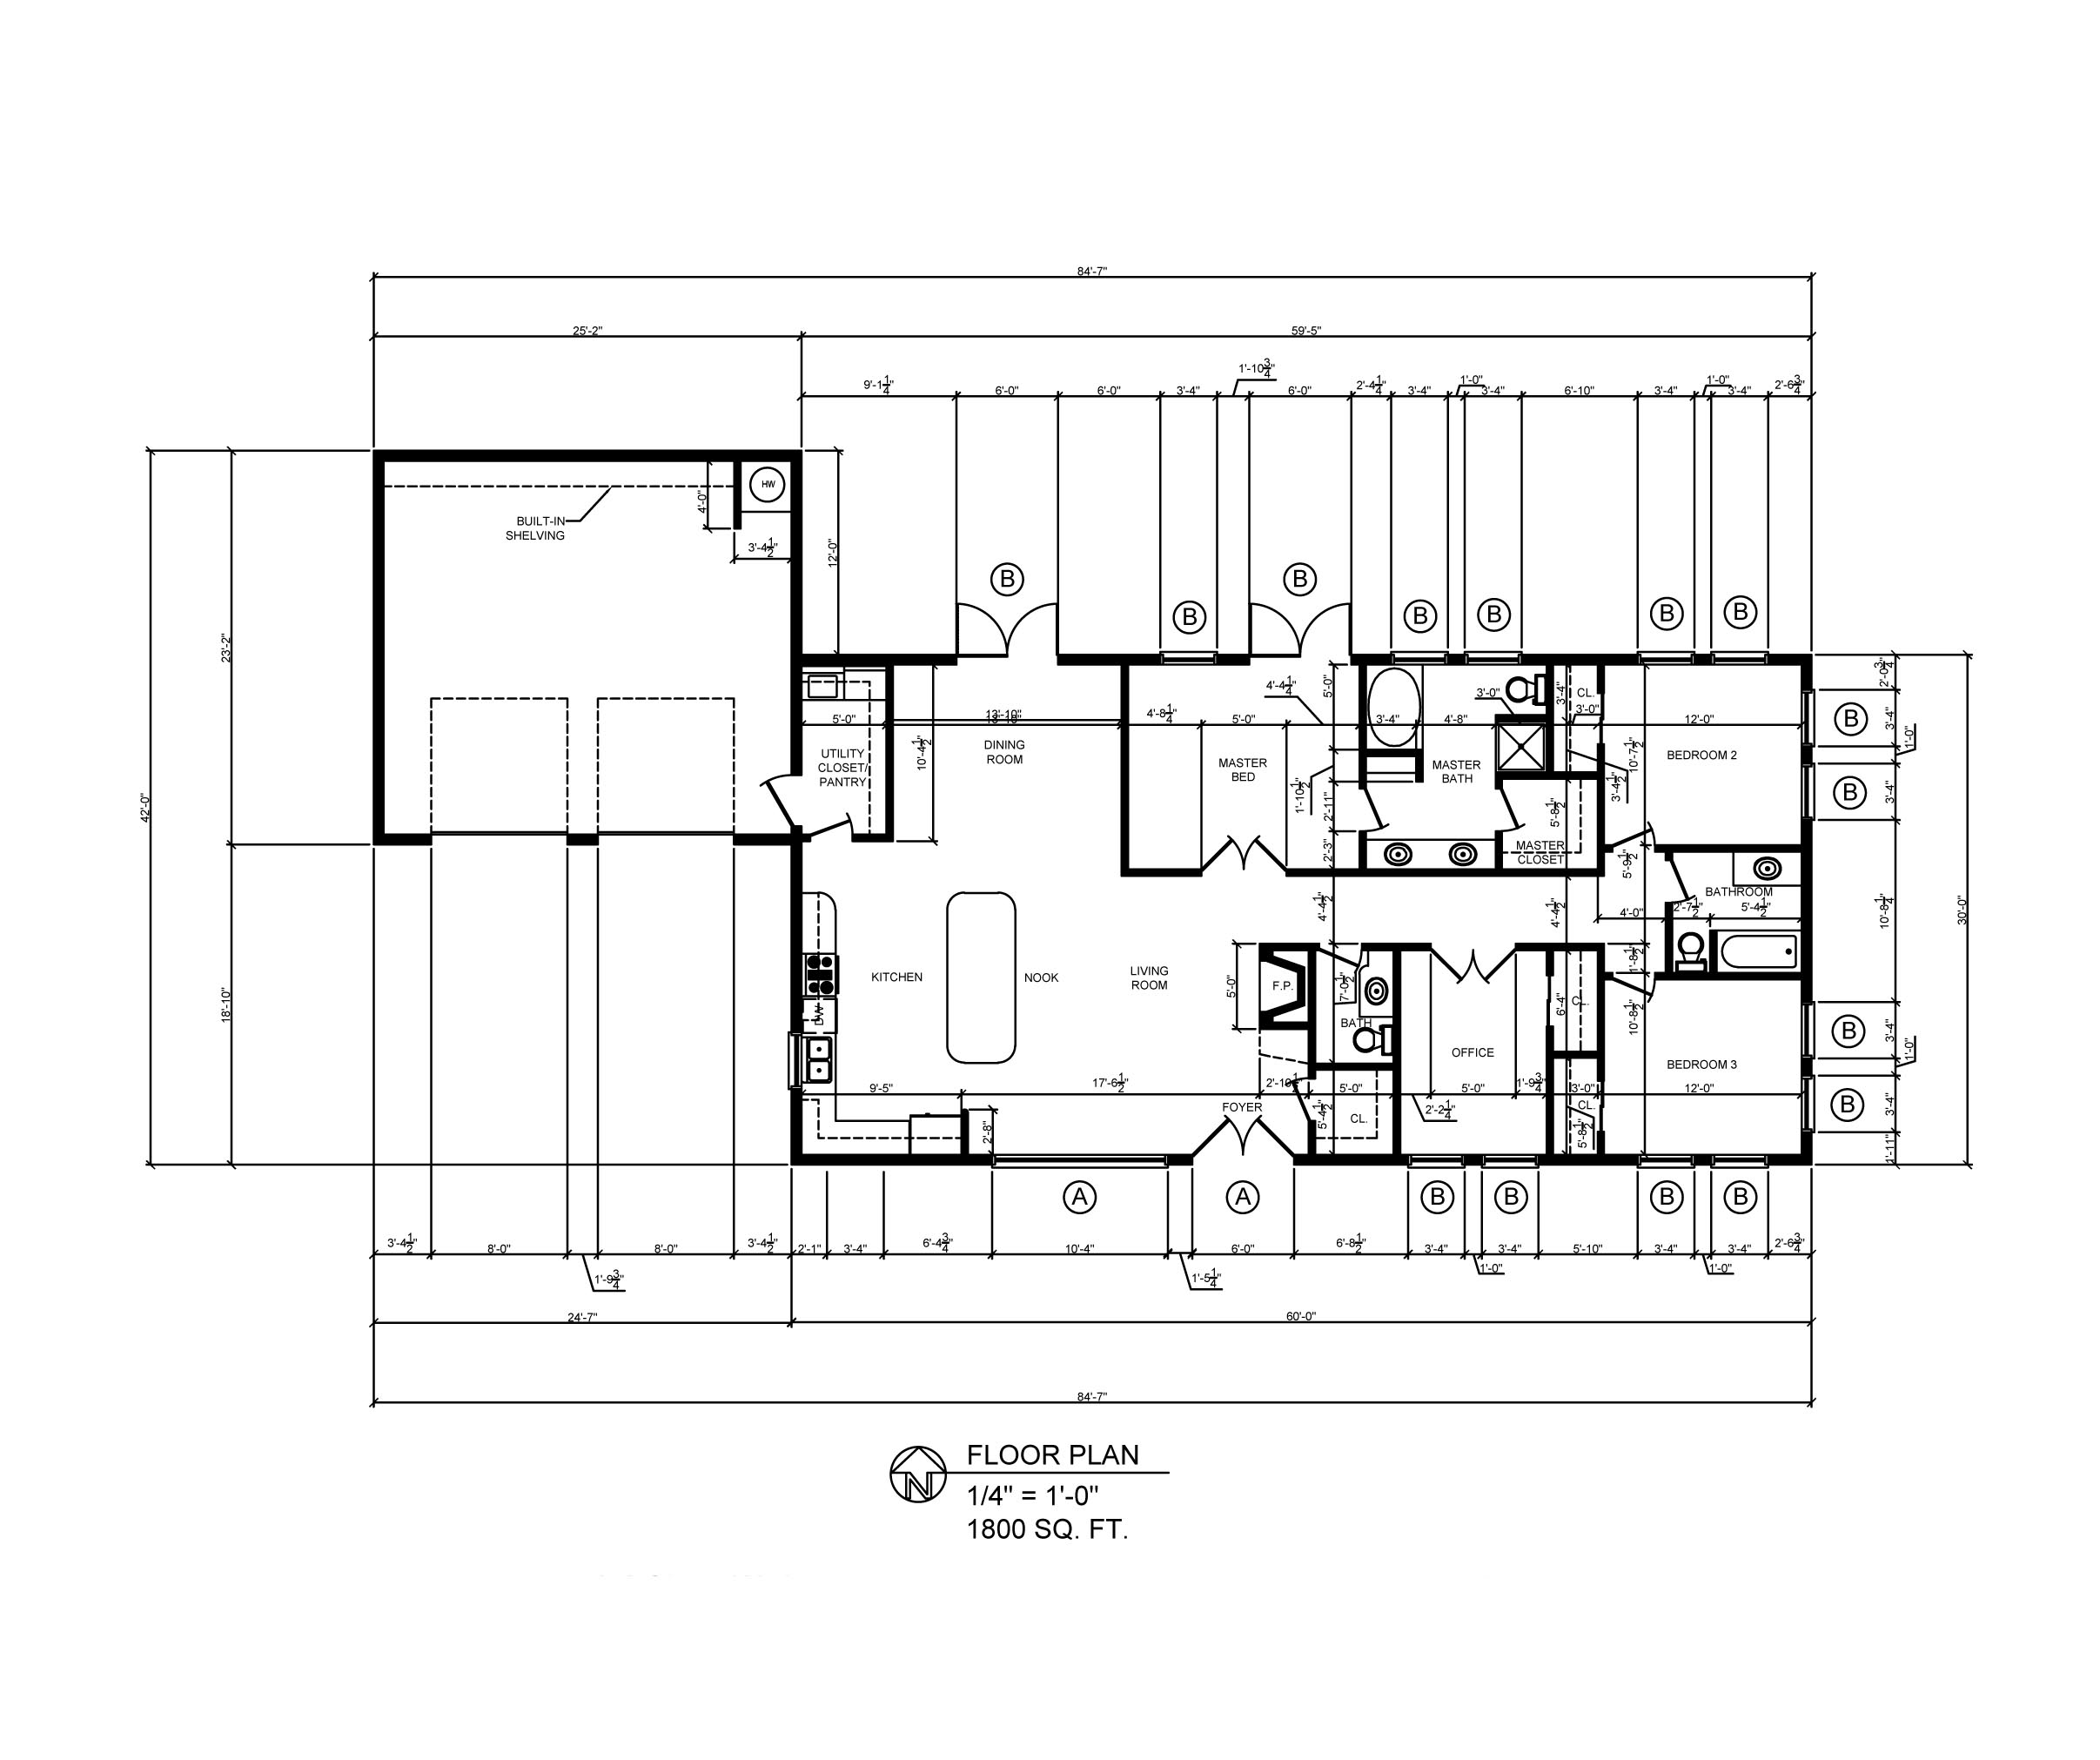 Autocad architectural drawings by steven paulsen at for Home architecture cad